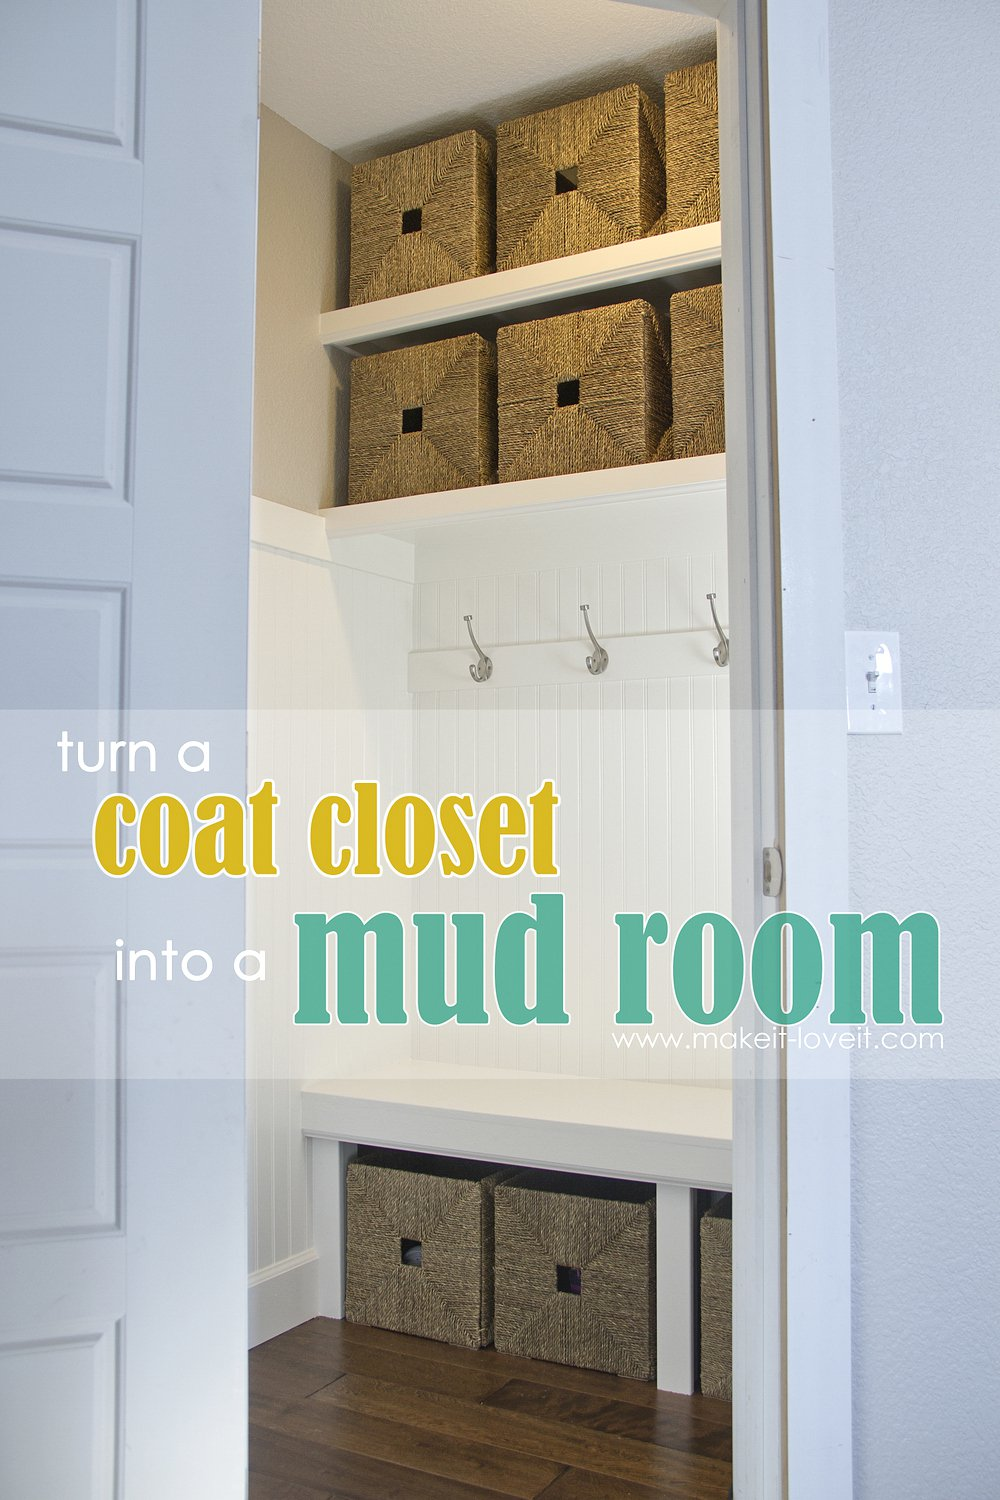 Turn-a-coat-closet-into-a-mudroom-1